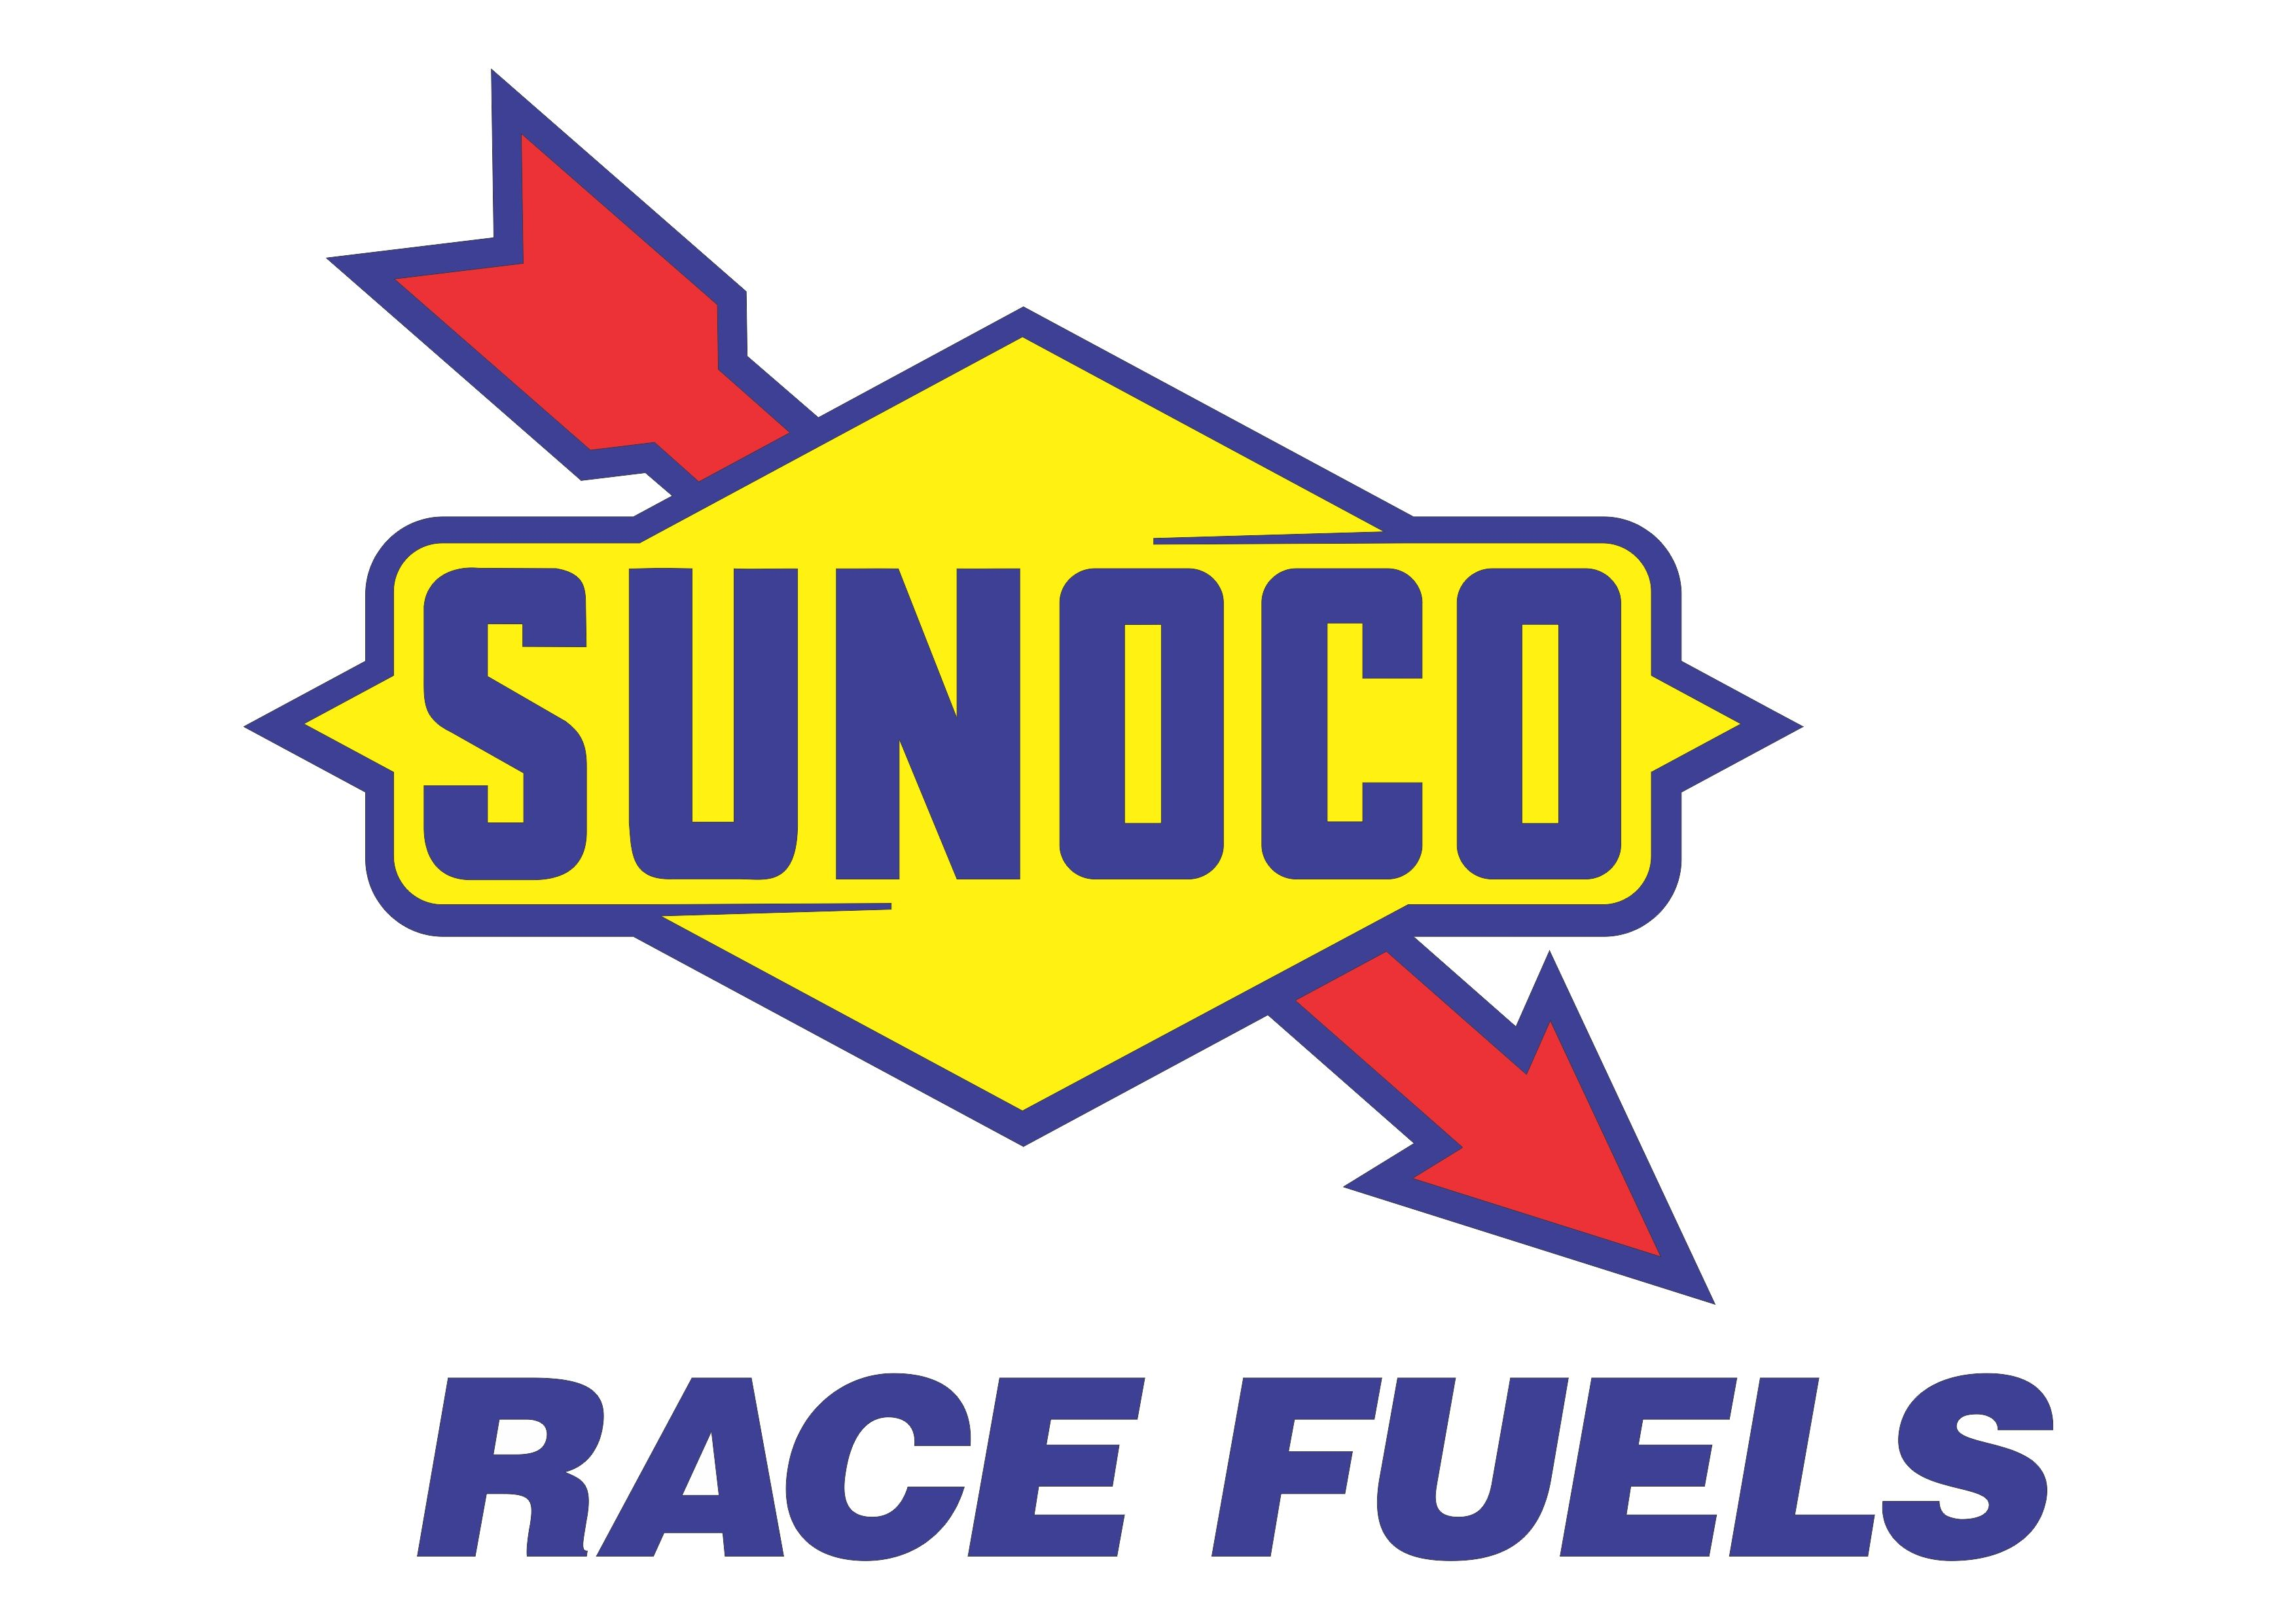 Sunoco Race Sign I Remember When Mark Donahue Drove For Sunoco I Believe He Was Killed In A Race While Driving F Concept Cars Drag Racing Cars Race Sponsor